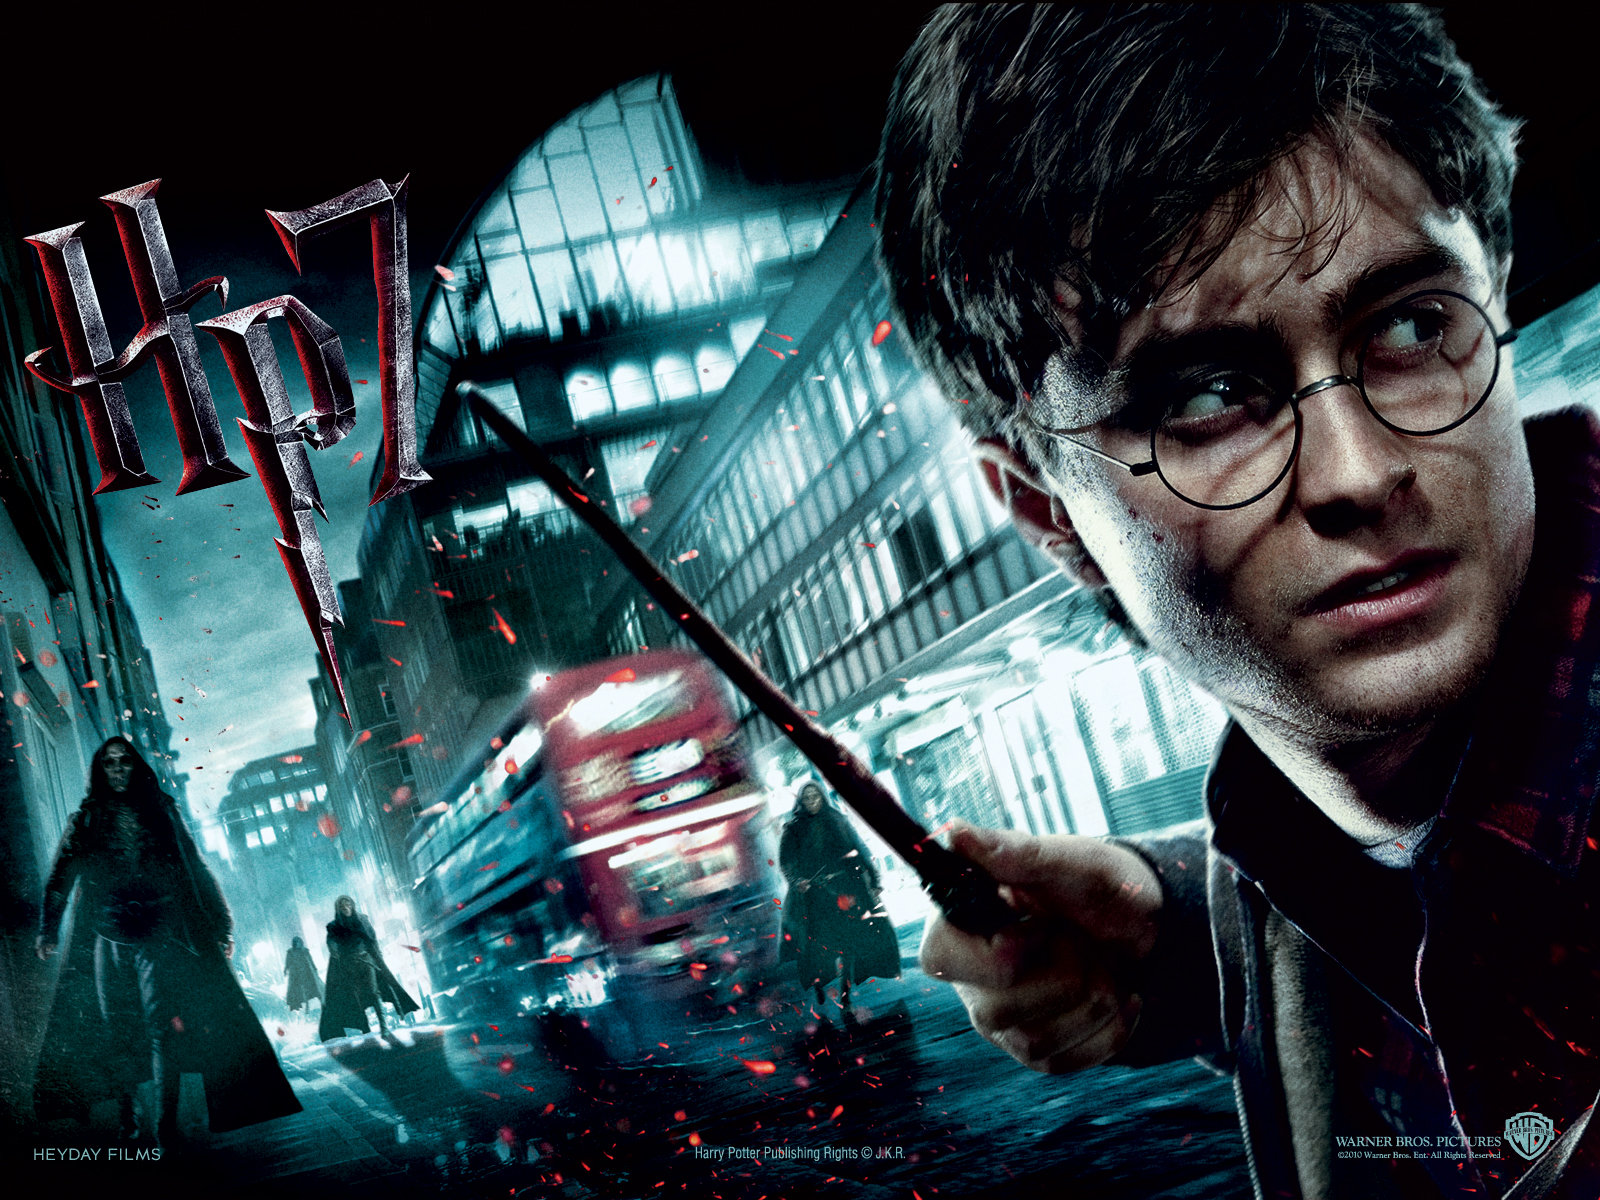 essay on harry potter and the deathly hallows